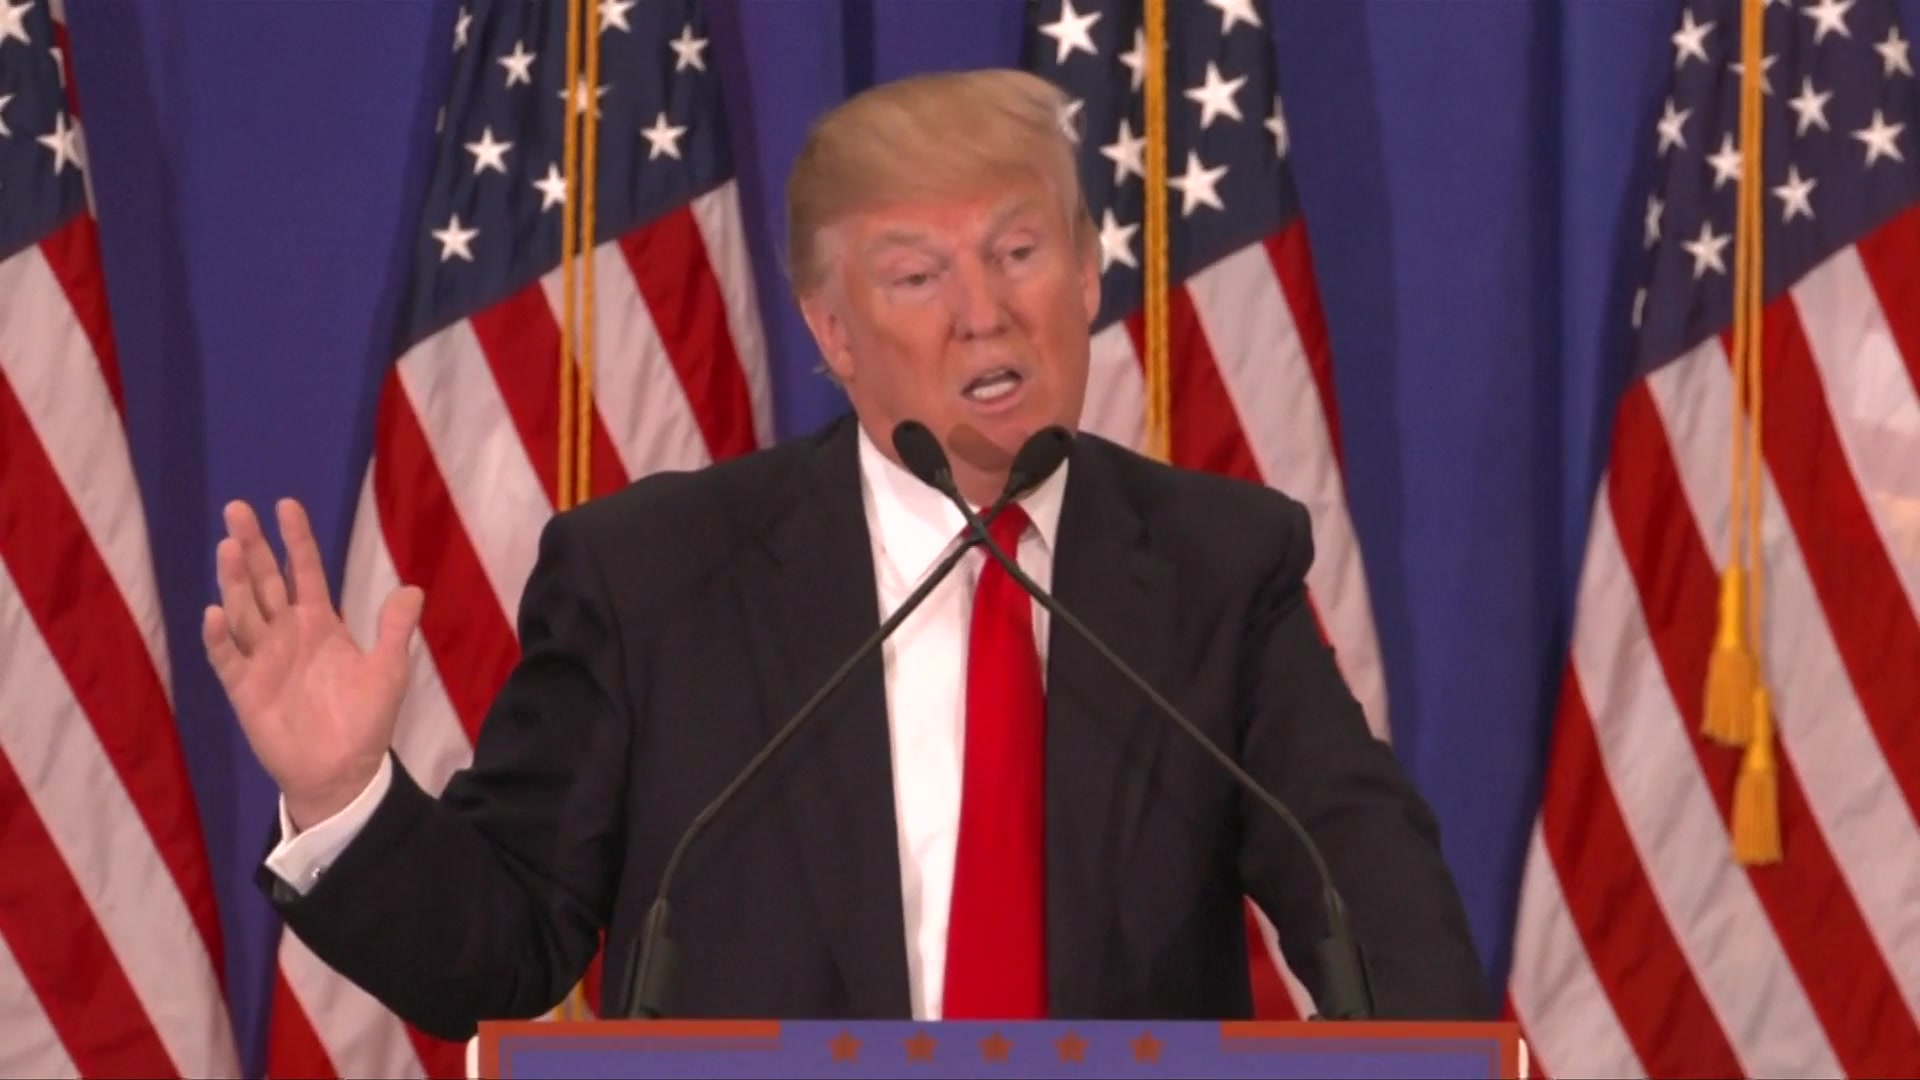 Trump: Only 'Donald Trump' Did Well Tonight